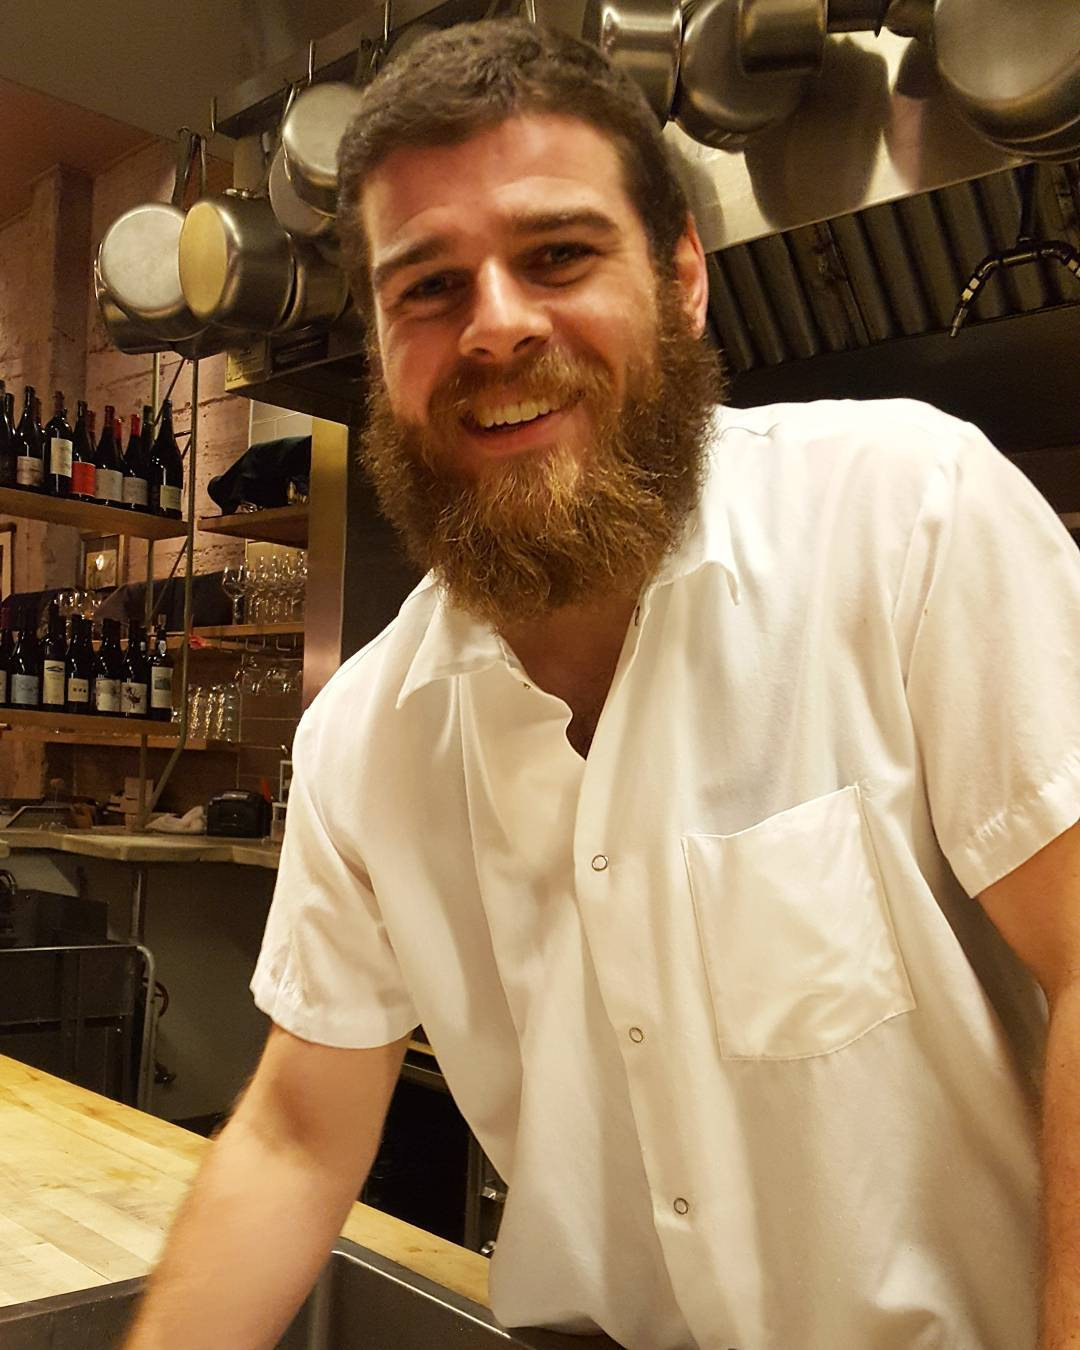 Very excited to introduce Harrison line cook turned sous chef!hellip